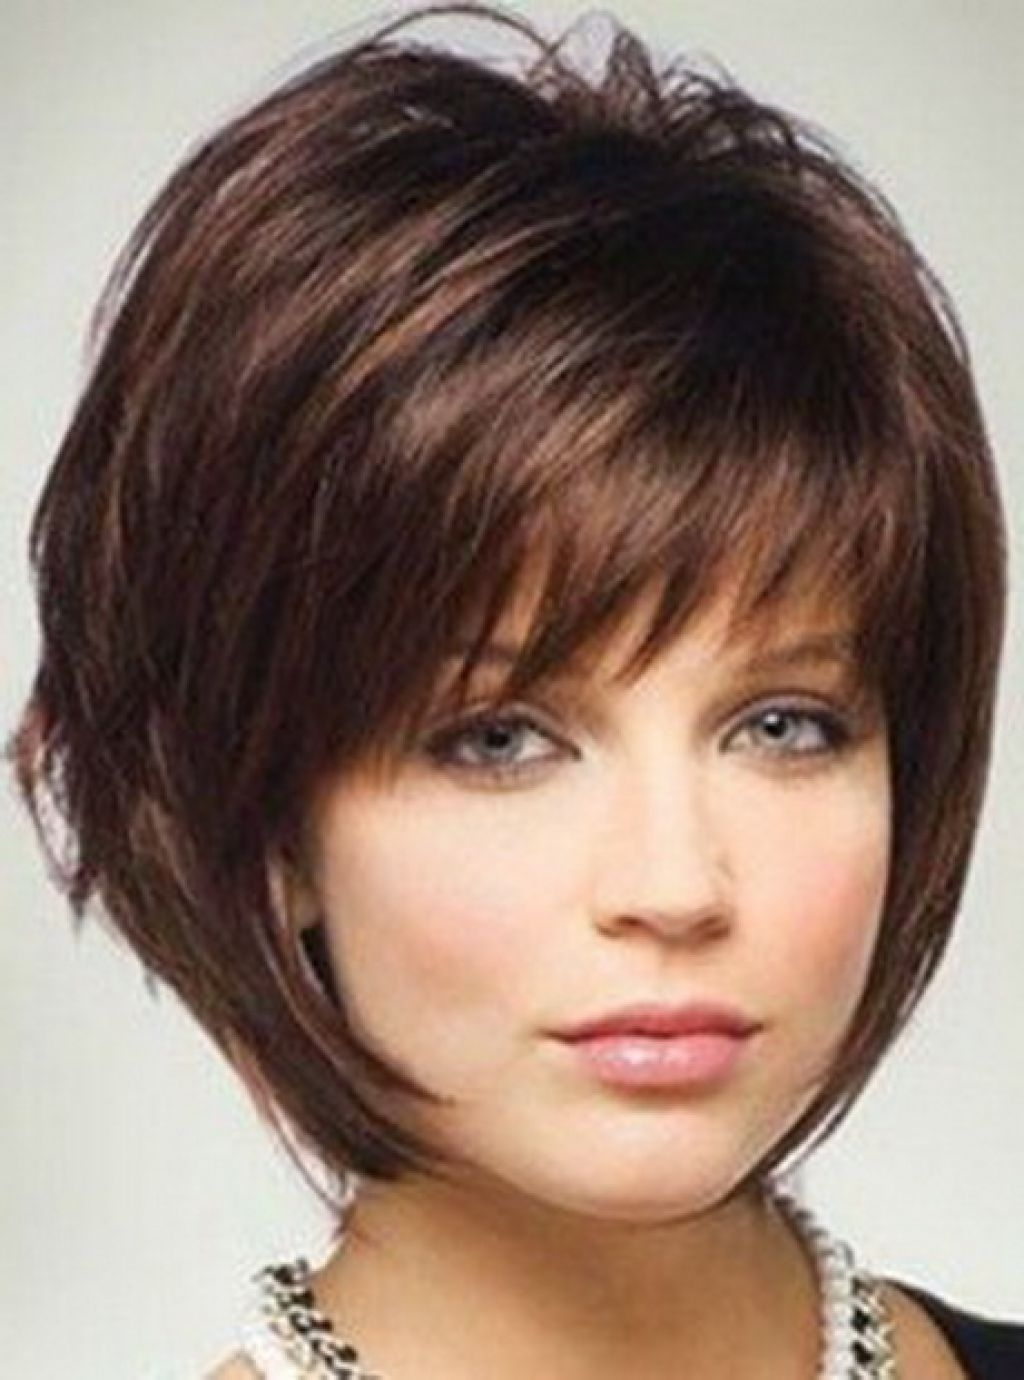 Popular Shaggy Bob Hairstyles With Bangs With Regard To Short Shaggy Hairstyles With Bangs – Hairstyle For Women & Man (View 12 of 15)